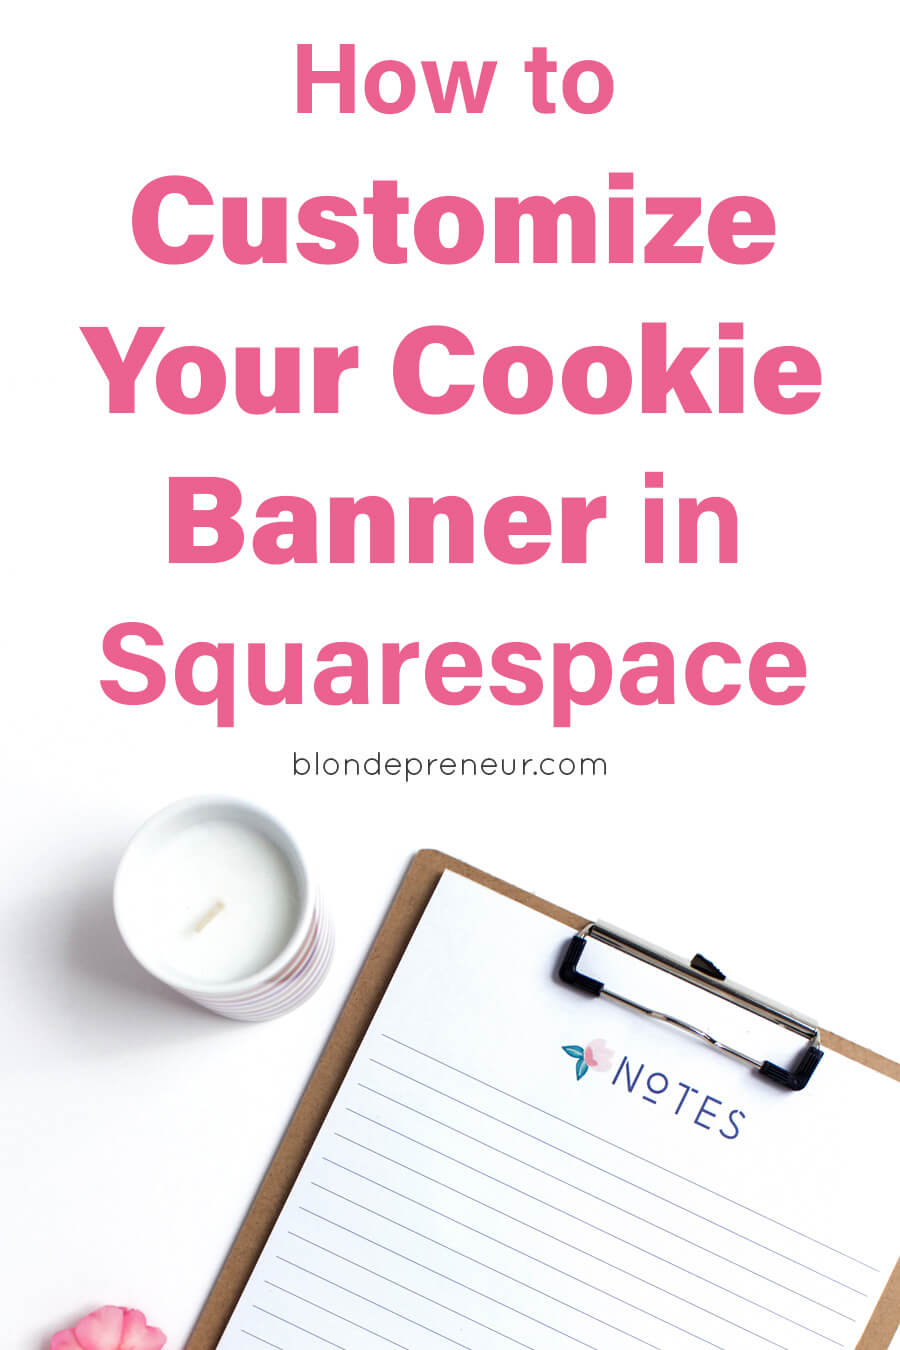 When using Squarespace's cookie banner on your website it isn't exactly pretty. But you know the importance of following GDPR on your blog and understand that a cookie banner is crucial. Learn how to customize your website's cookie banner in Squarespace with these easy to follow instructions with copy and paste code included! #squarespace #blogging #blogdesign #websitecookiebanner